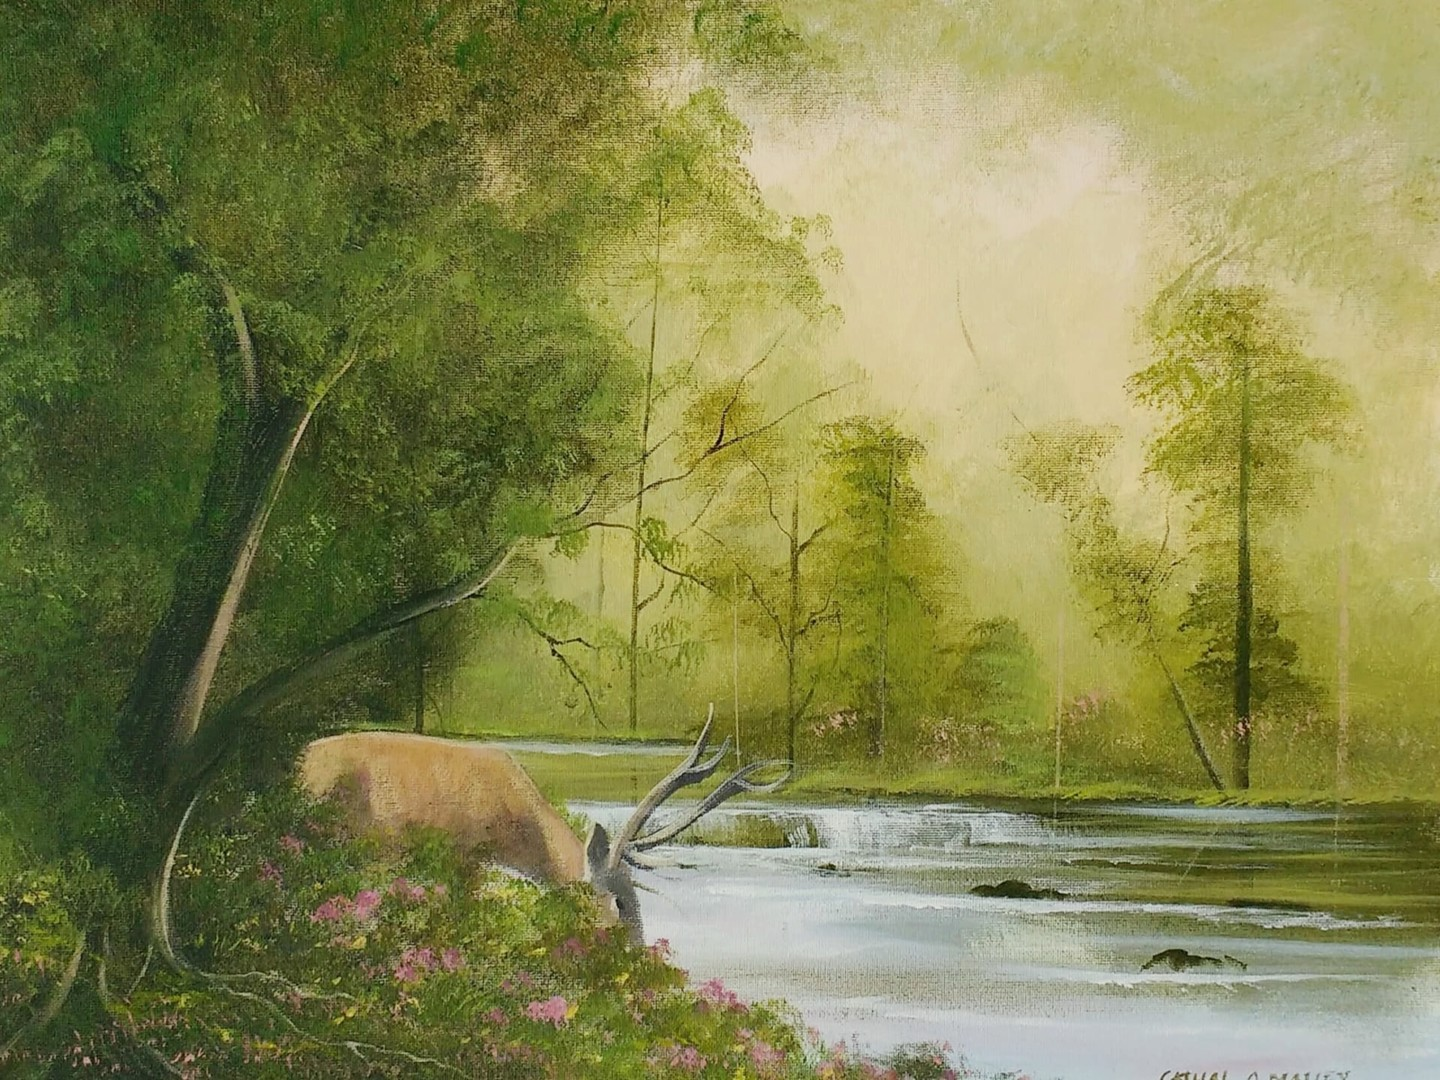 Cathal O Malley - Stag by the river